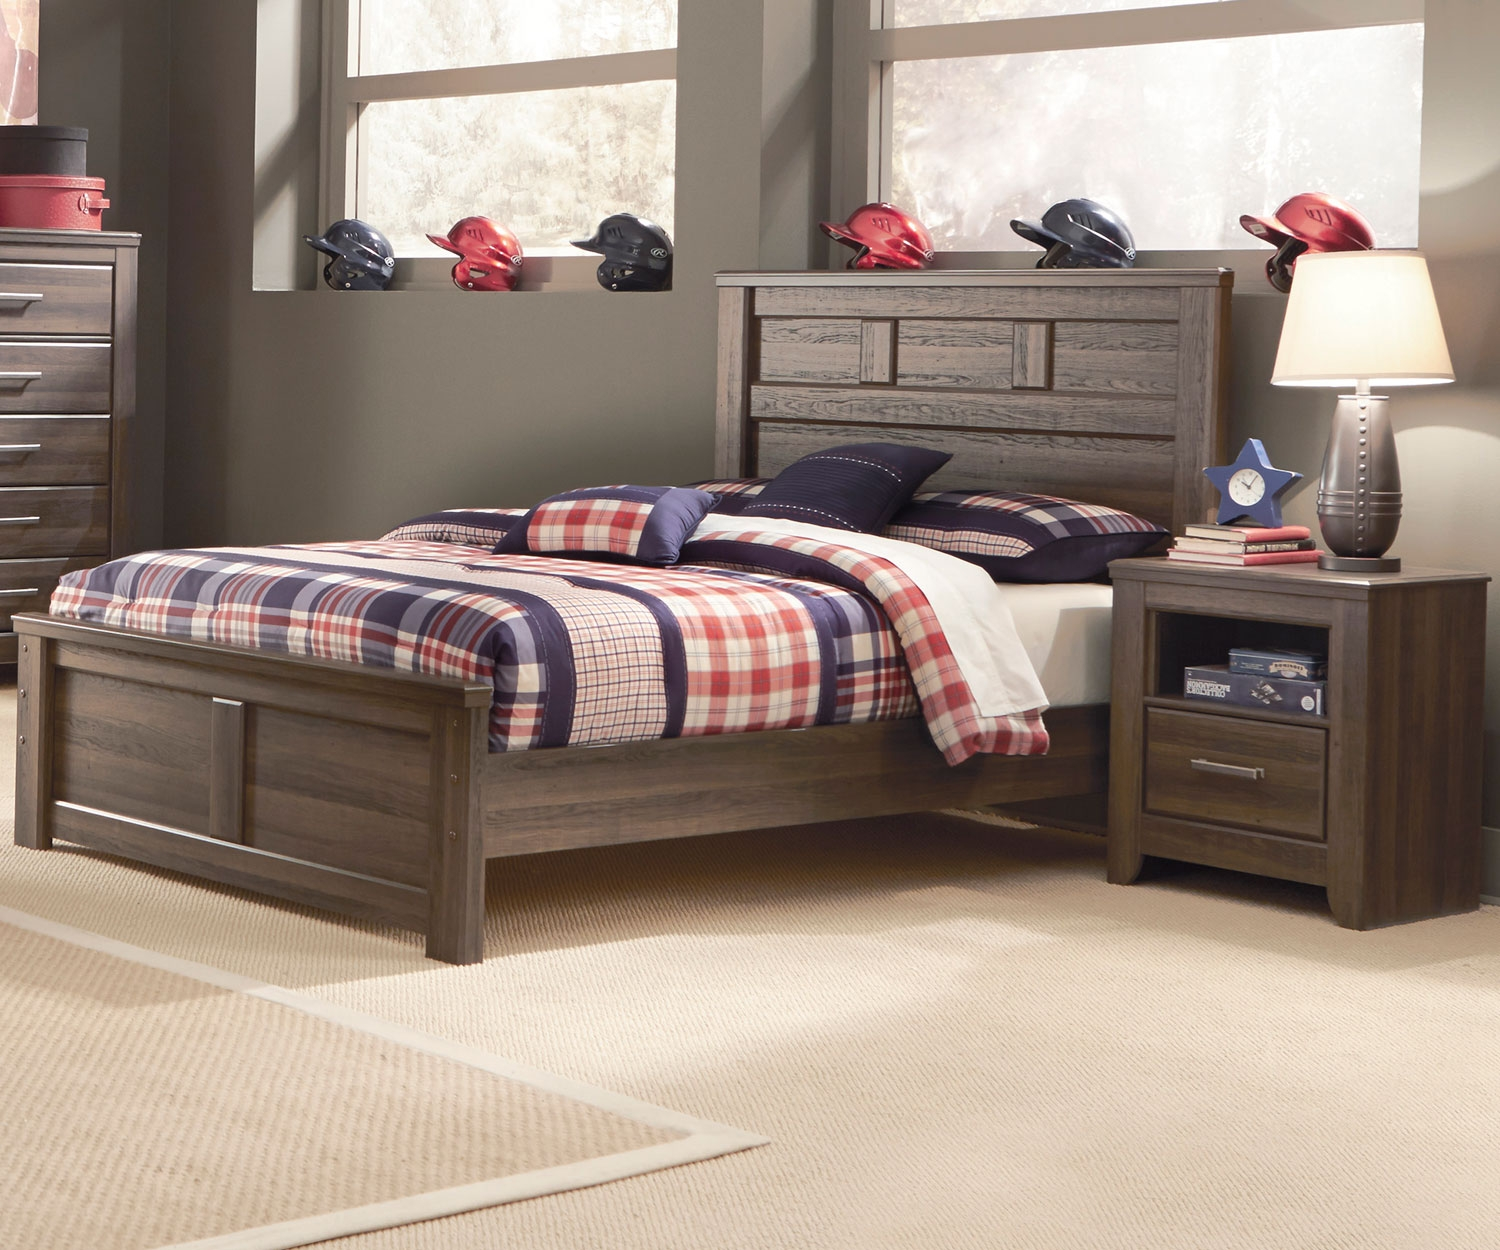 Bedroom Marvellous Childrens Full Size Bed Teenage Toddler Furniture Ideas Grey Kelsey Simone French Sets By On Sale Student Apppie Org